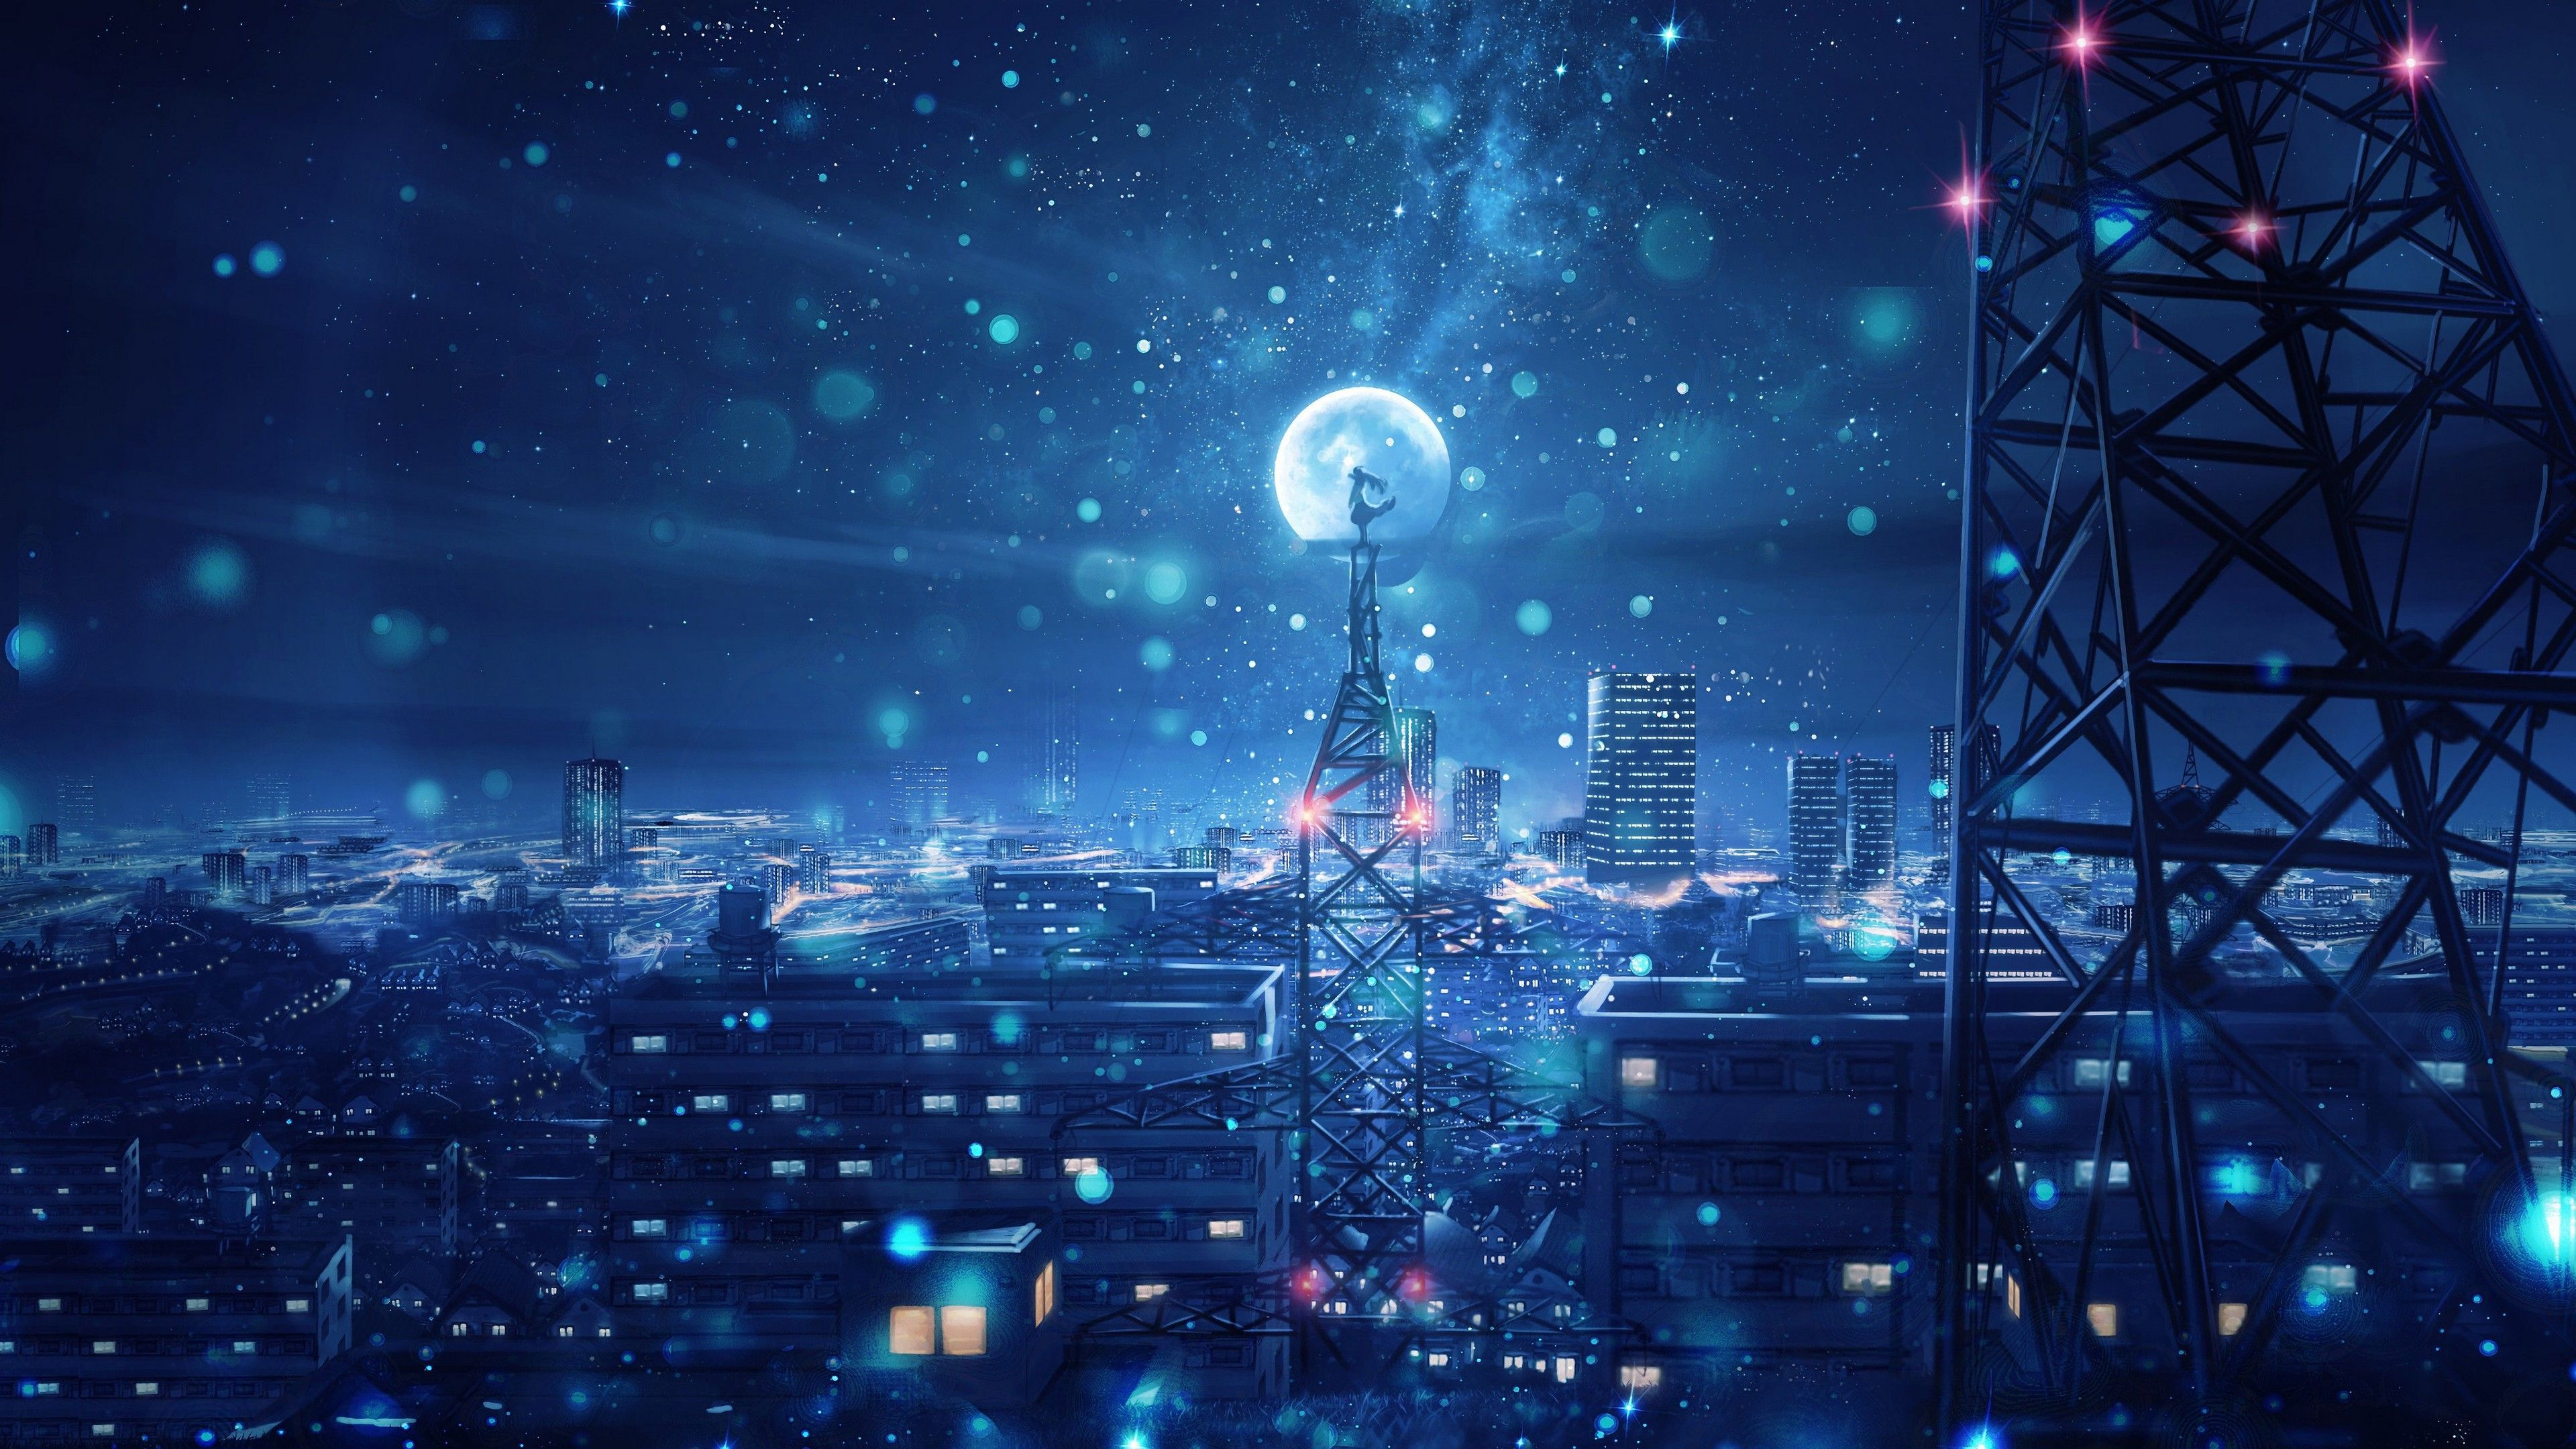 Wallpapers 4k Blue Night Big Moon Anime Scenery 4k